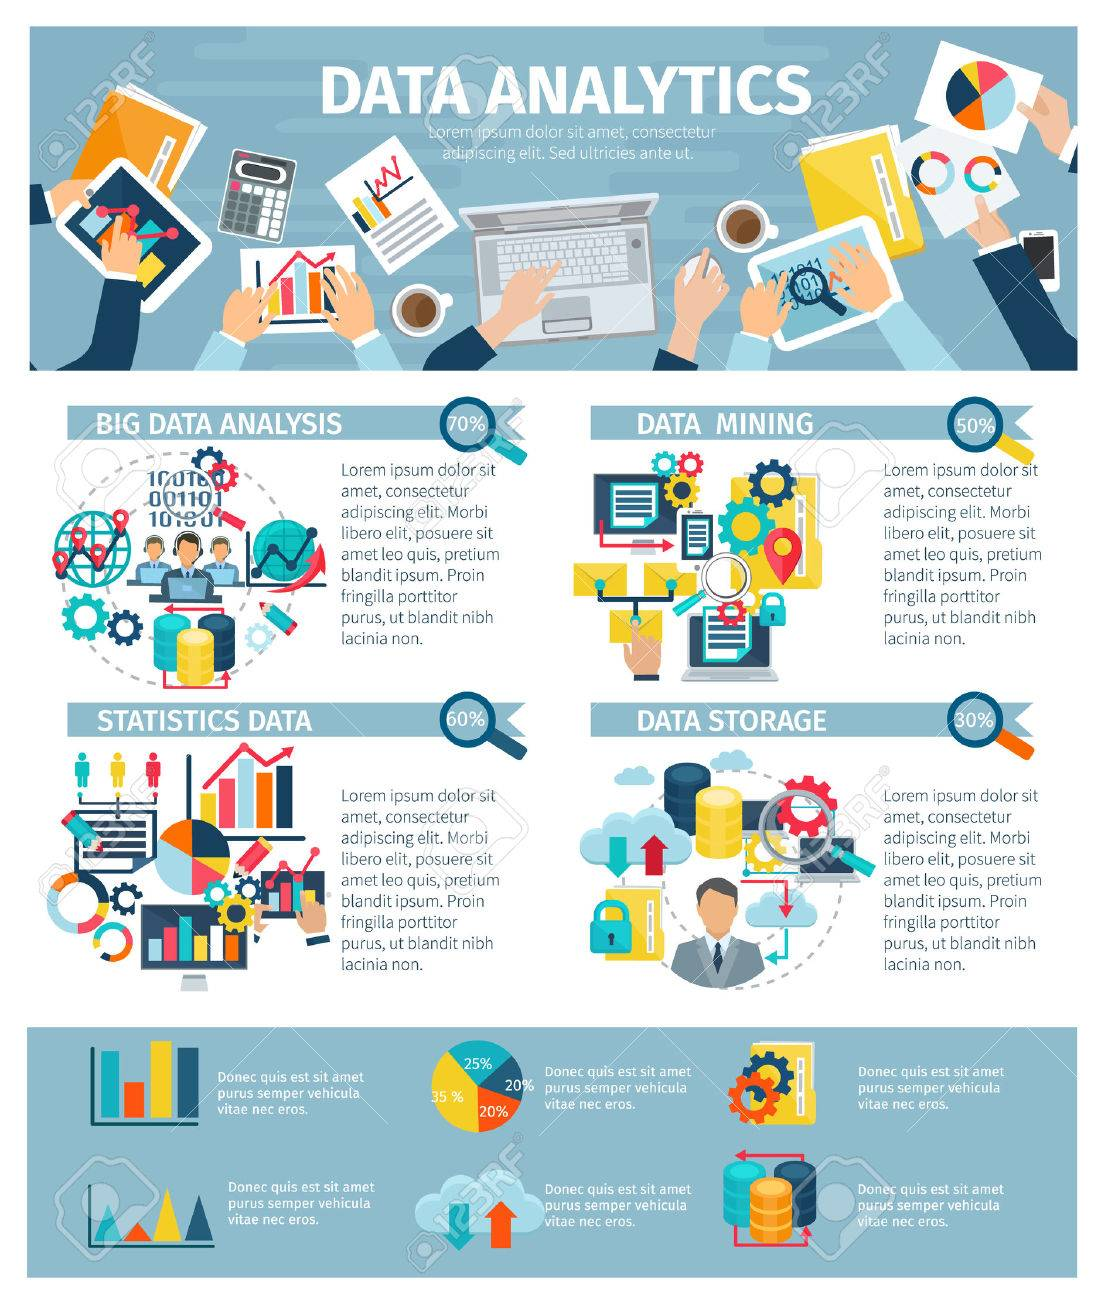 Big data mining analysis exchange statistics and storage technology infographic elements presentations poster flat abstract illustration vector - 54629386